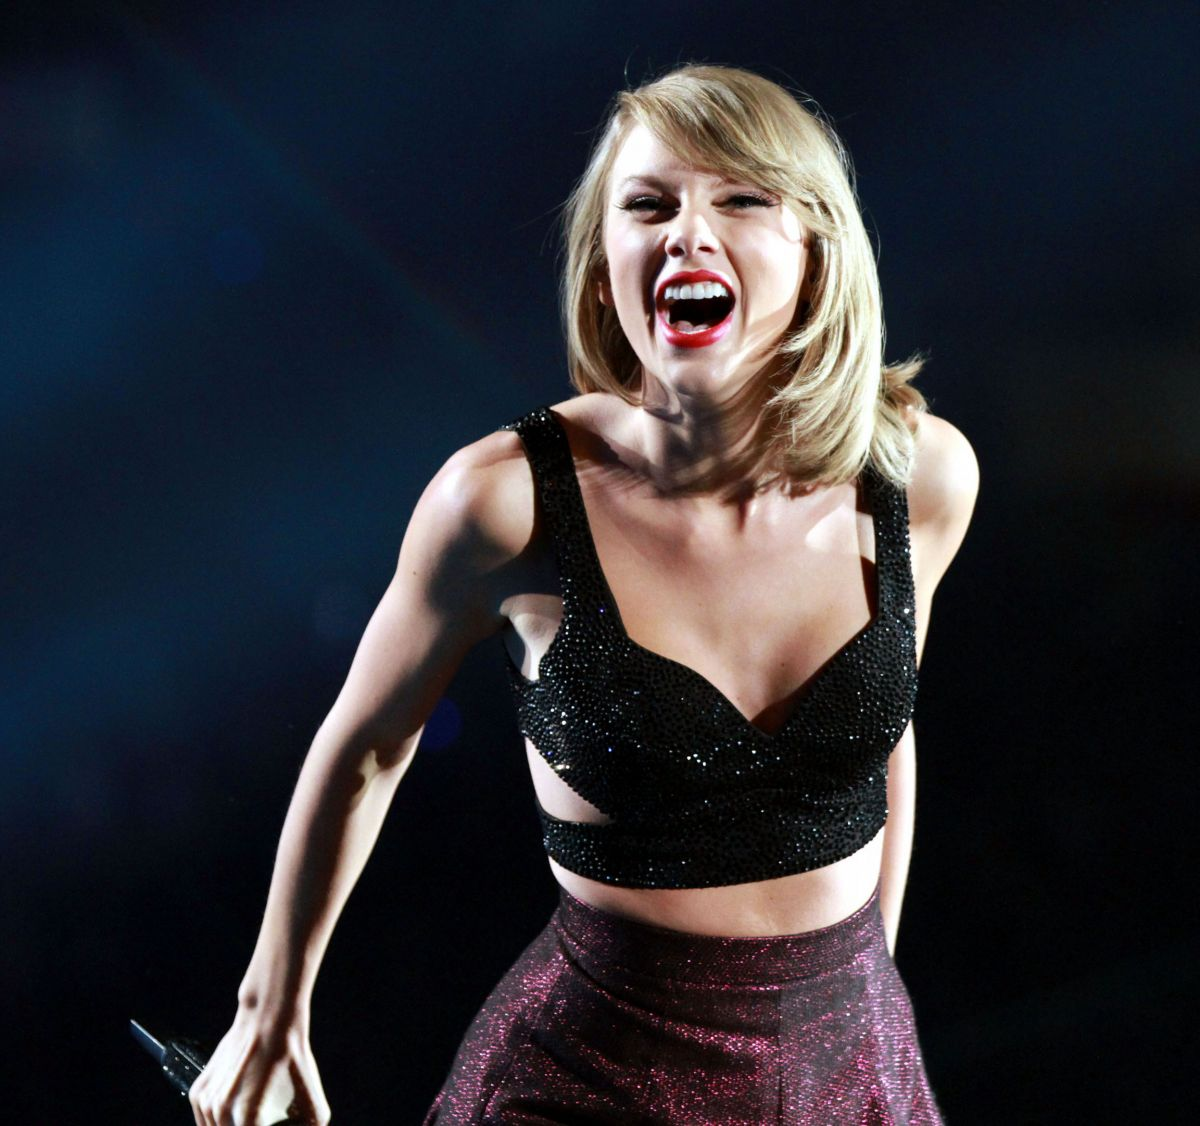 taylor-swift-and-tove-lo-performs-at-the-1989-world-tour-in-atlanta-10-24-205_5